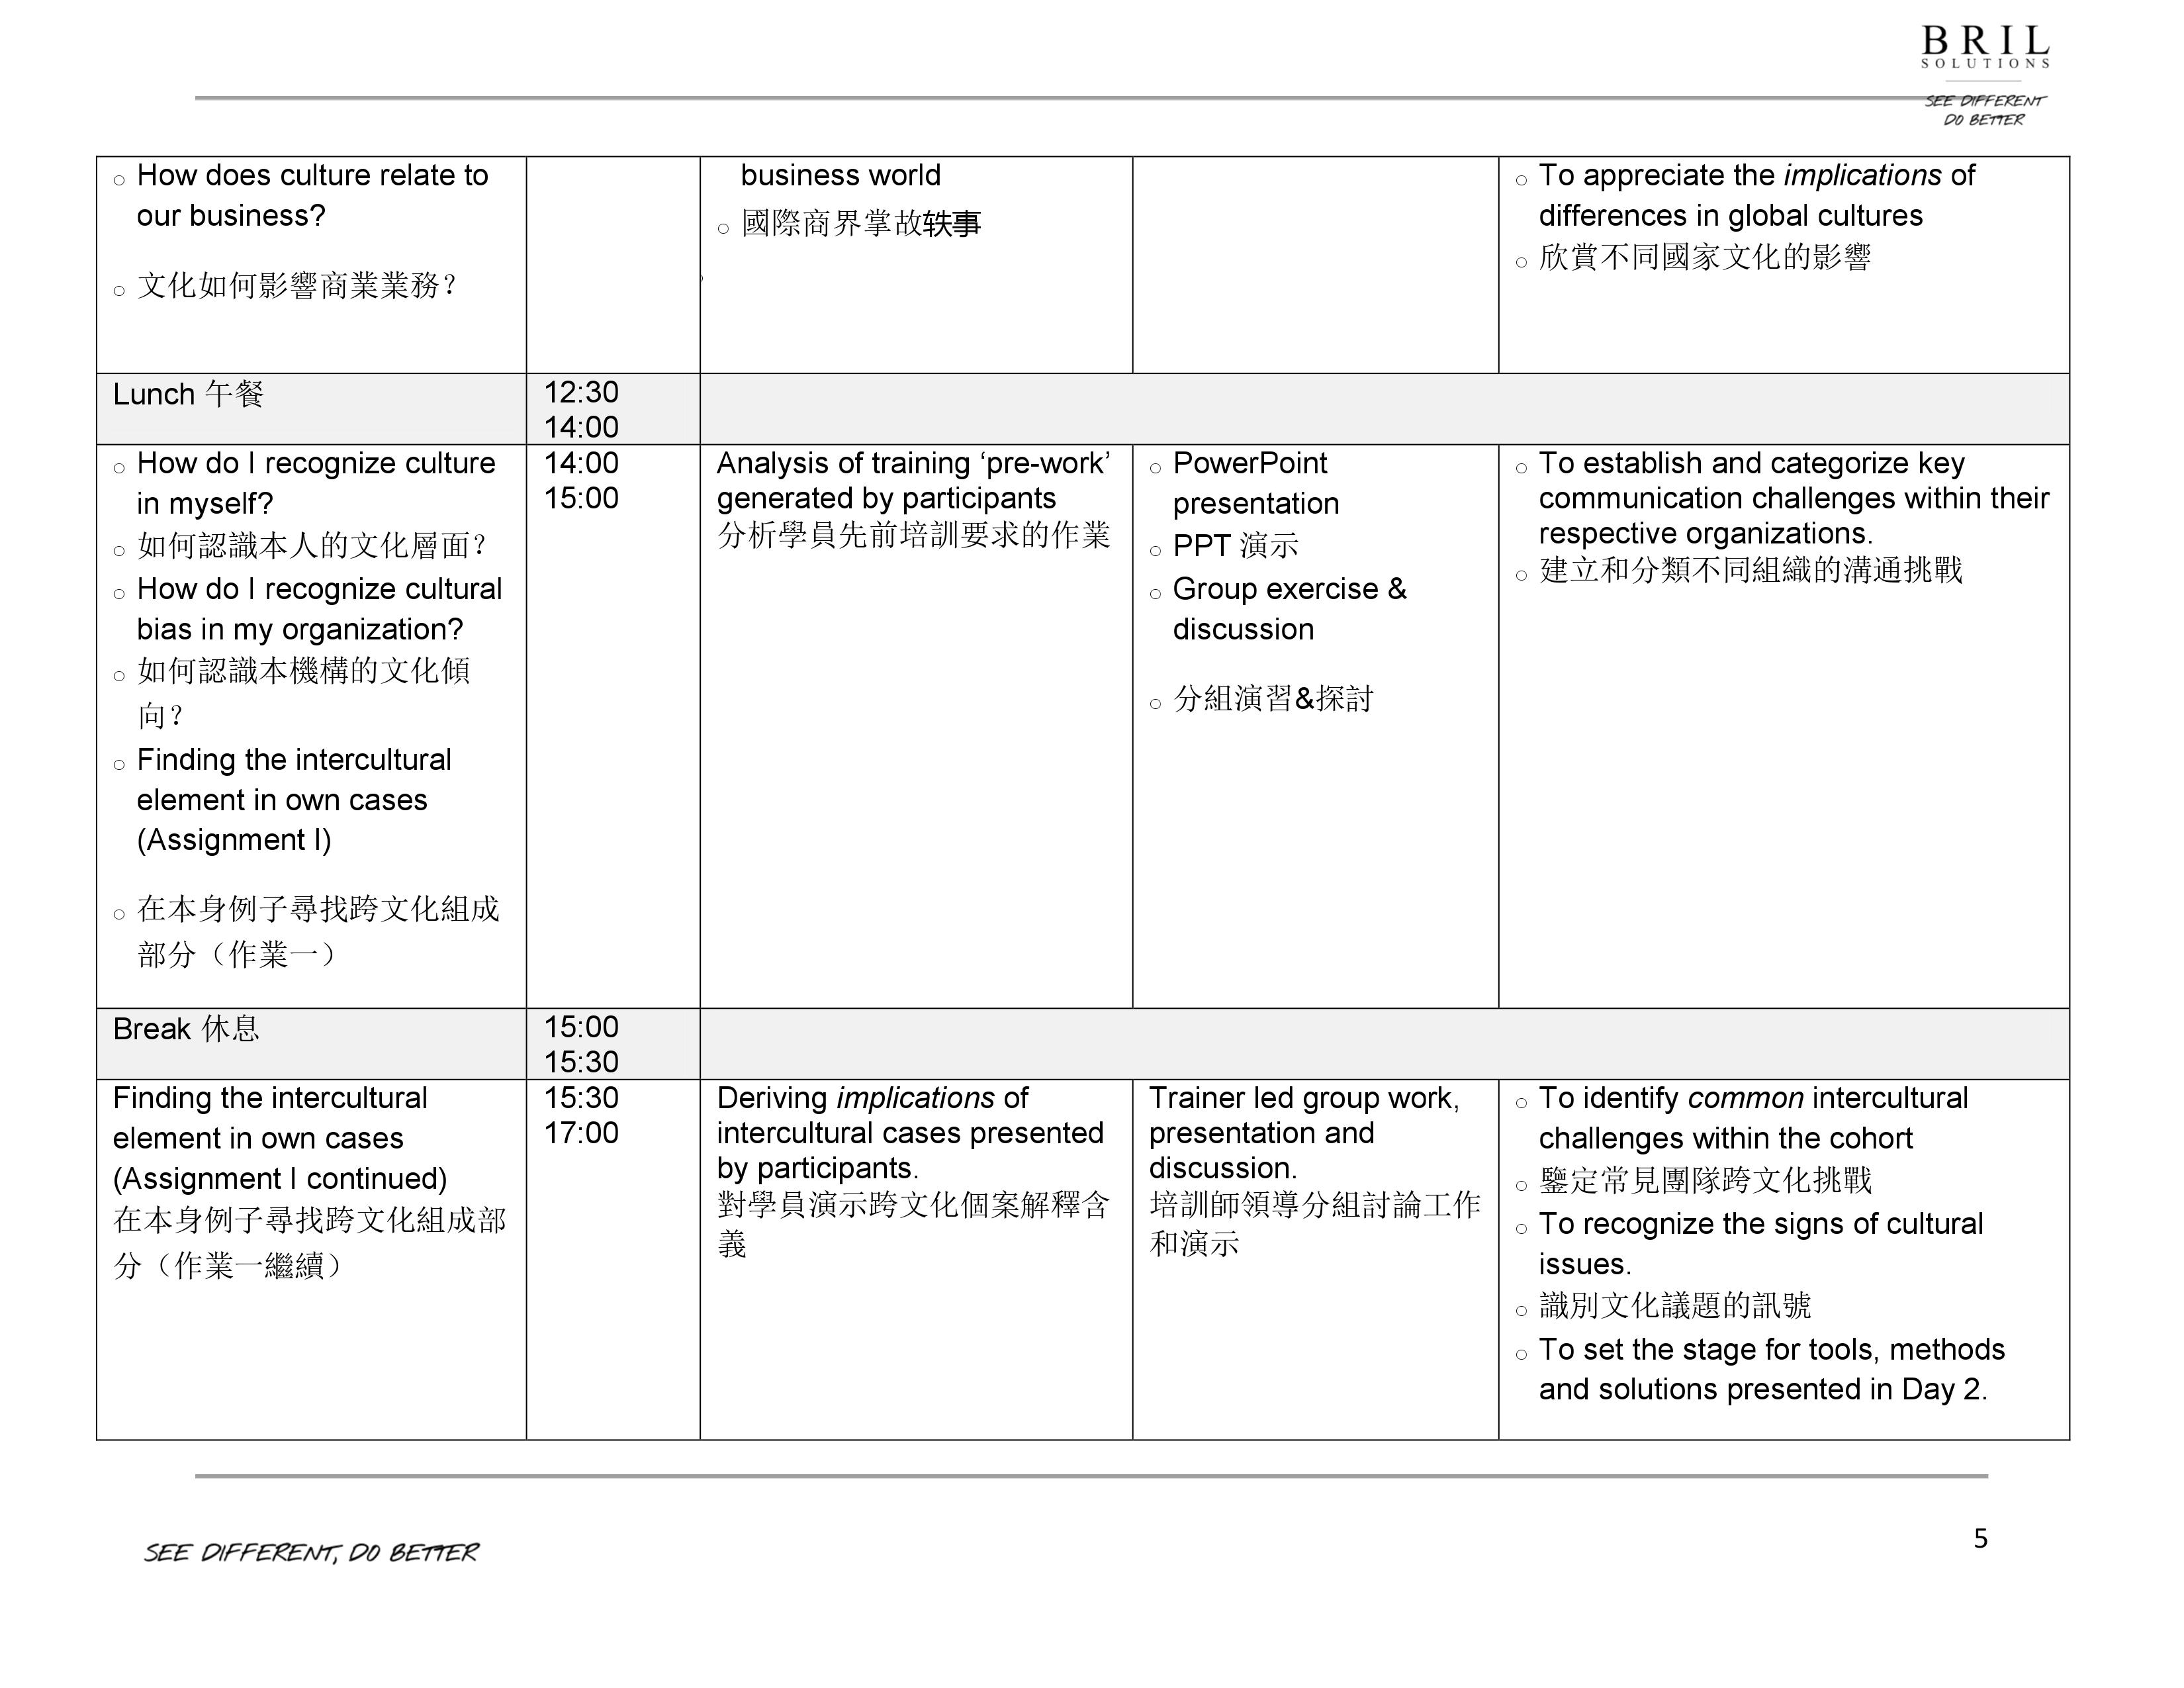 ICBS 2-day Program Overview - page 5